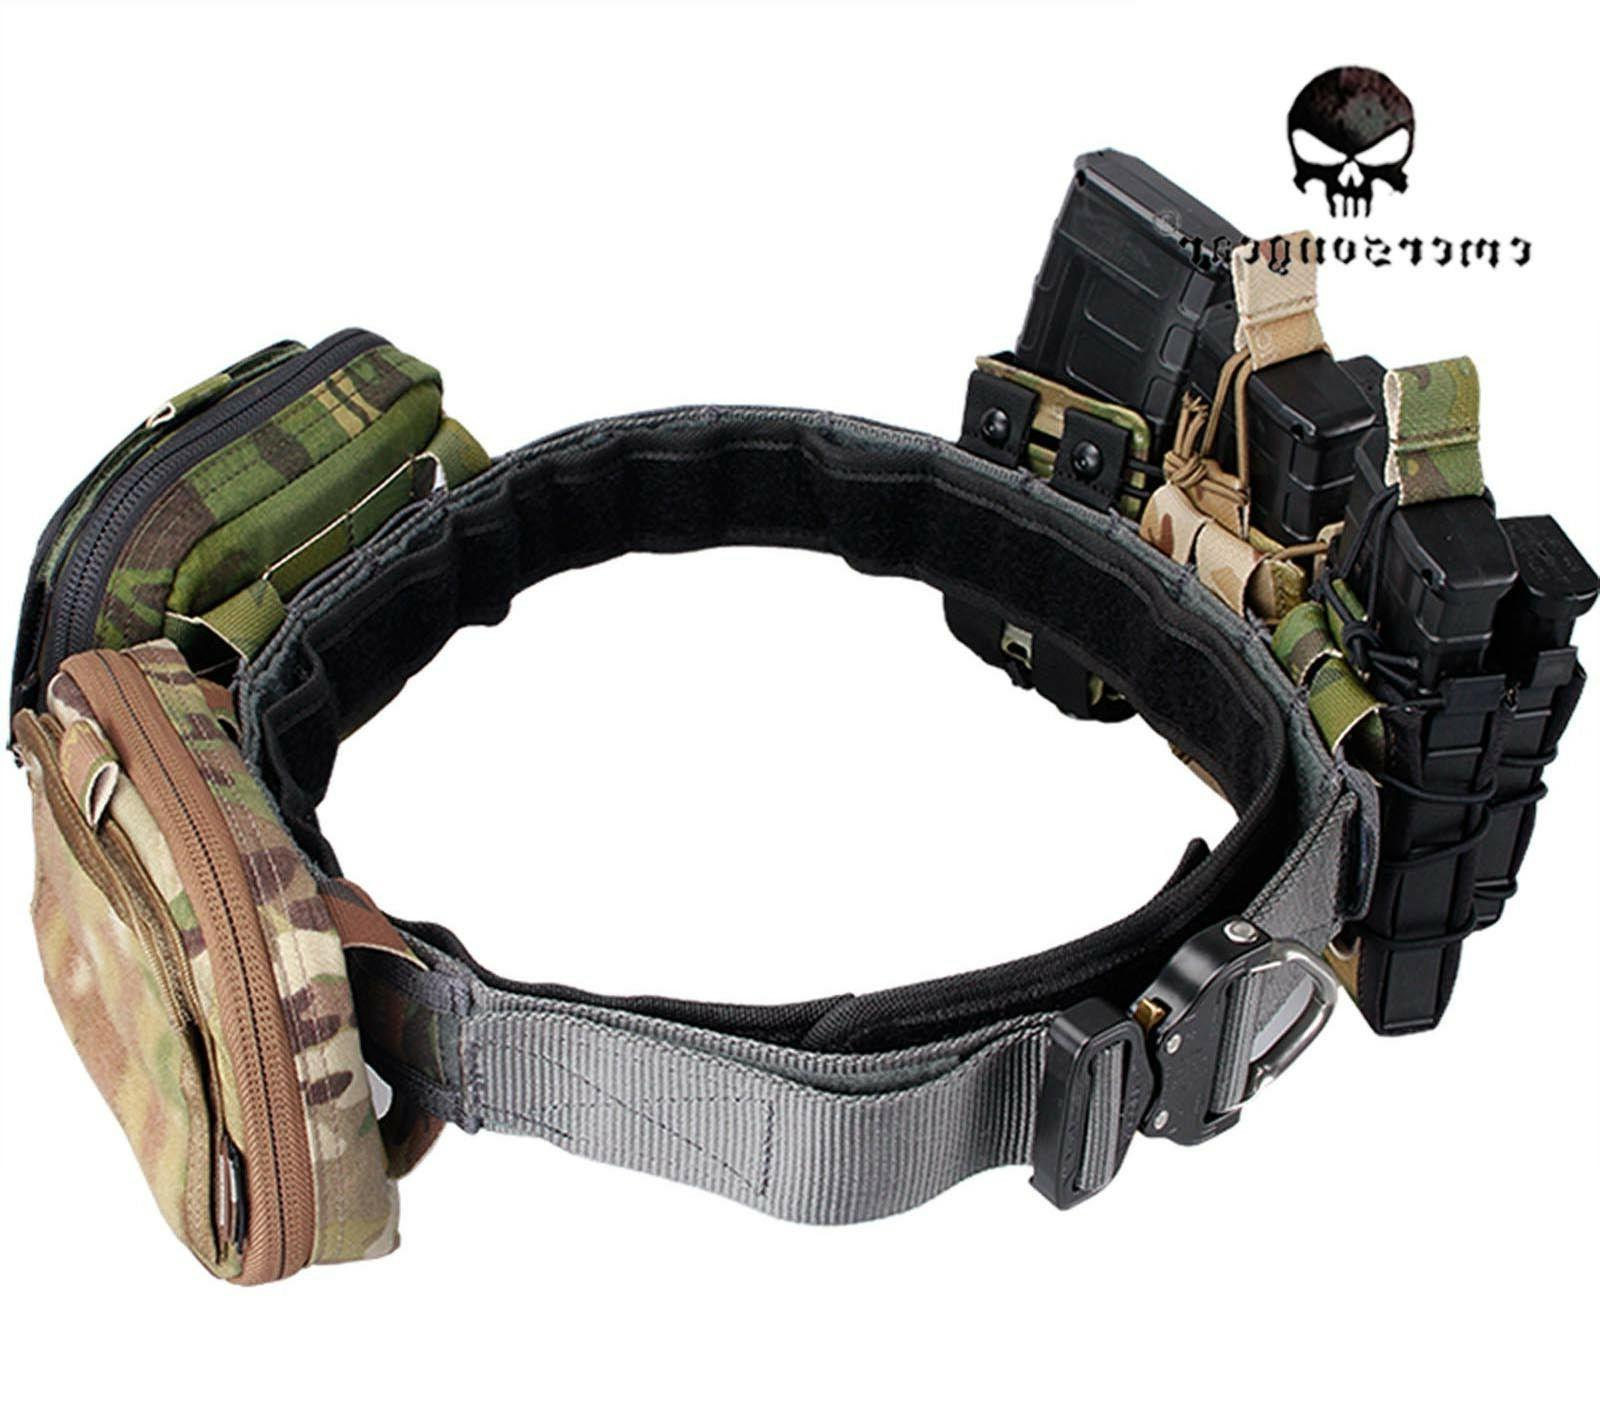 Emerson Cobra Riggers D-Ring Molle 1.75-2inch Amy Hunting